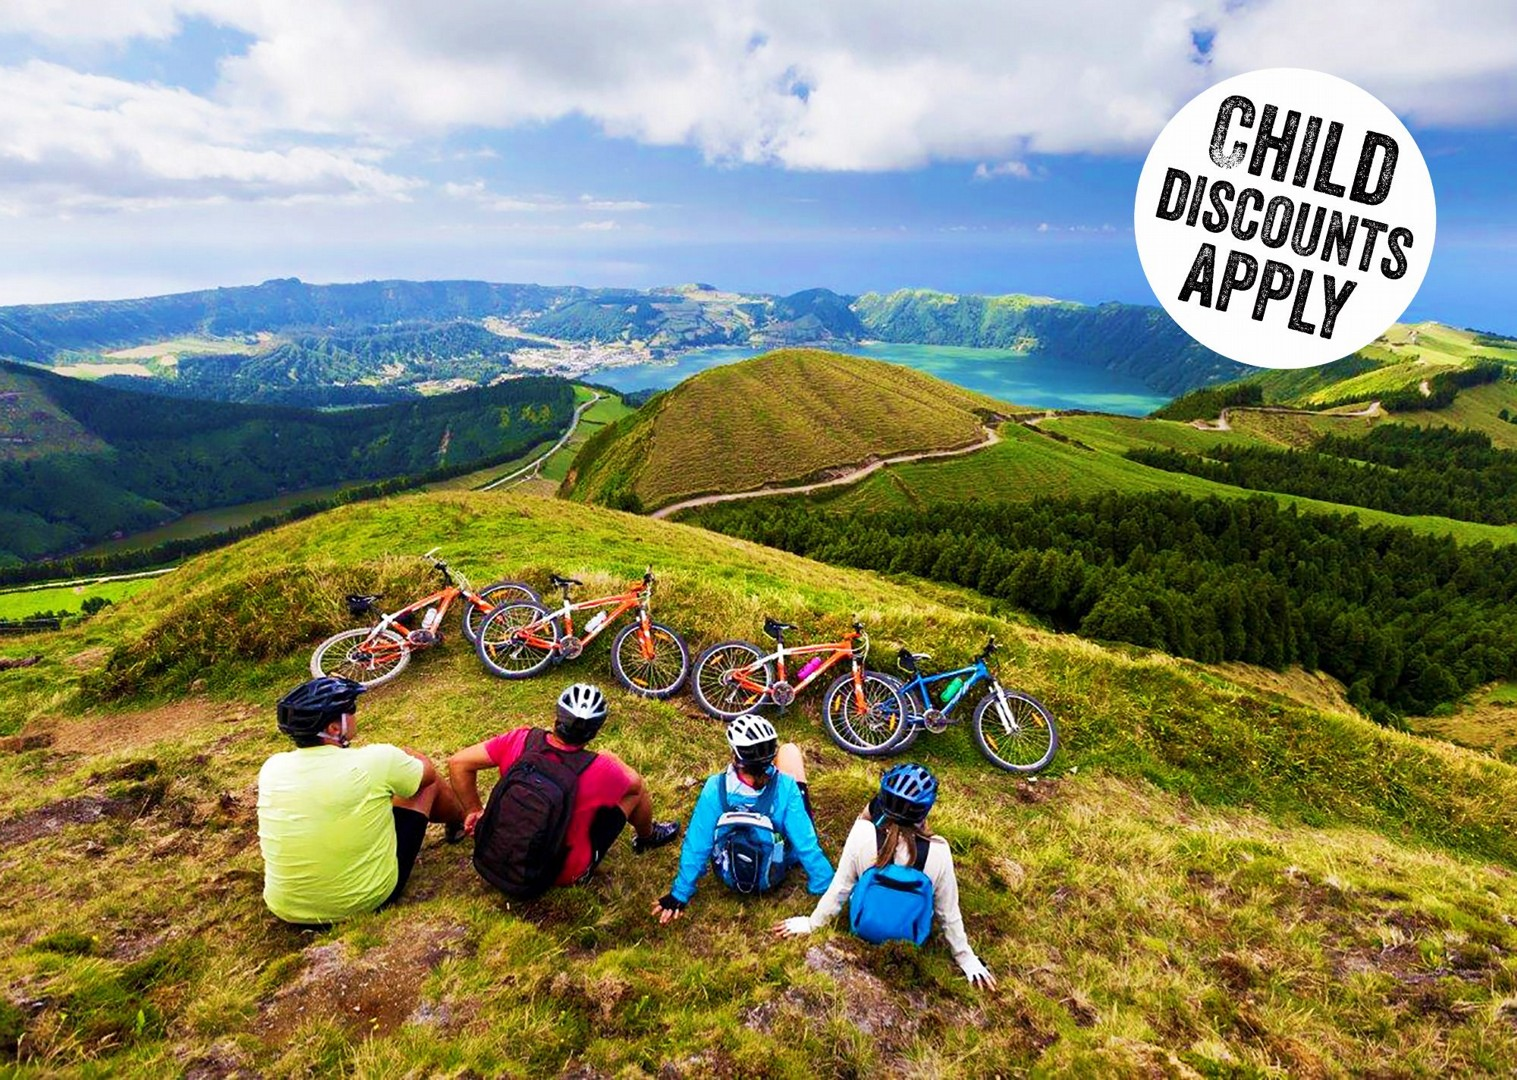 azores-adventures-family-cycling-holiday.jpg - The Azores - Island Discoverer - Family Cycling